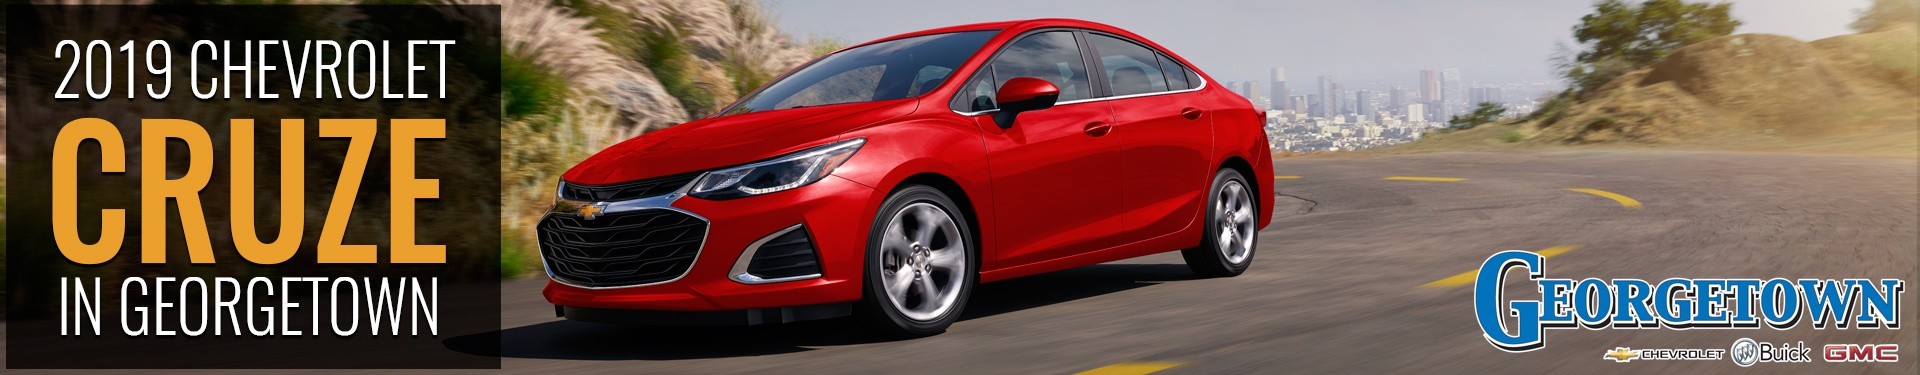 Discover the new 2019 Chevrolet Cruze in Georgetown and the Greater Toronto Area from Georgetown Chevrolet